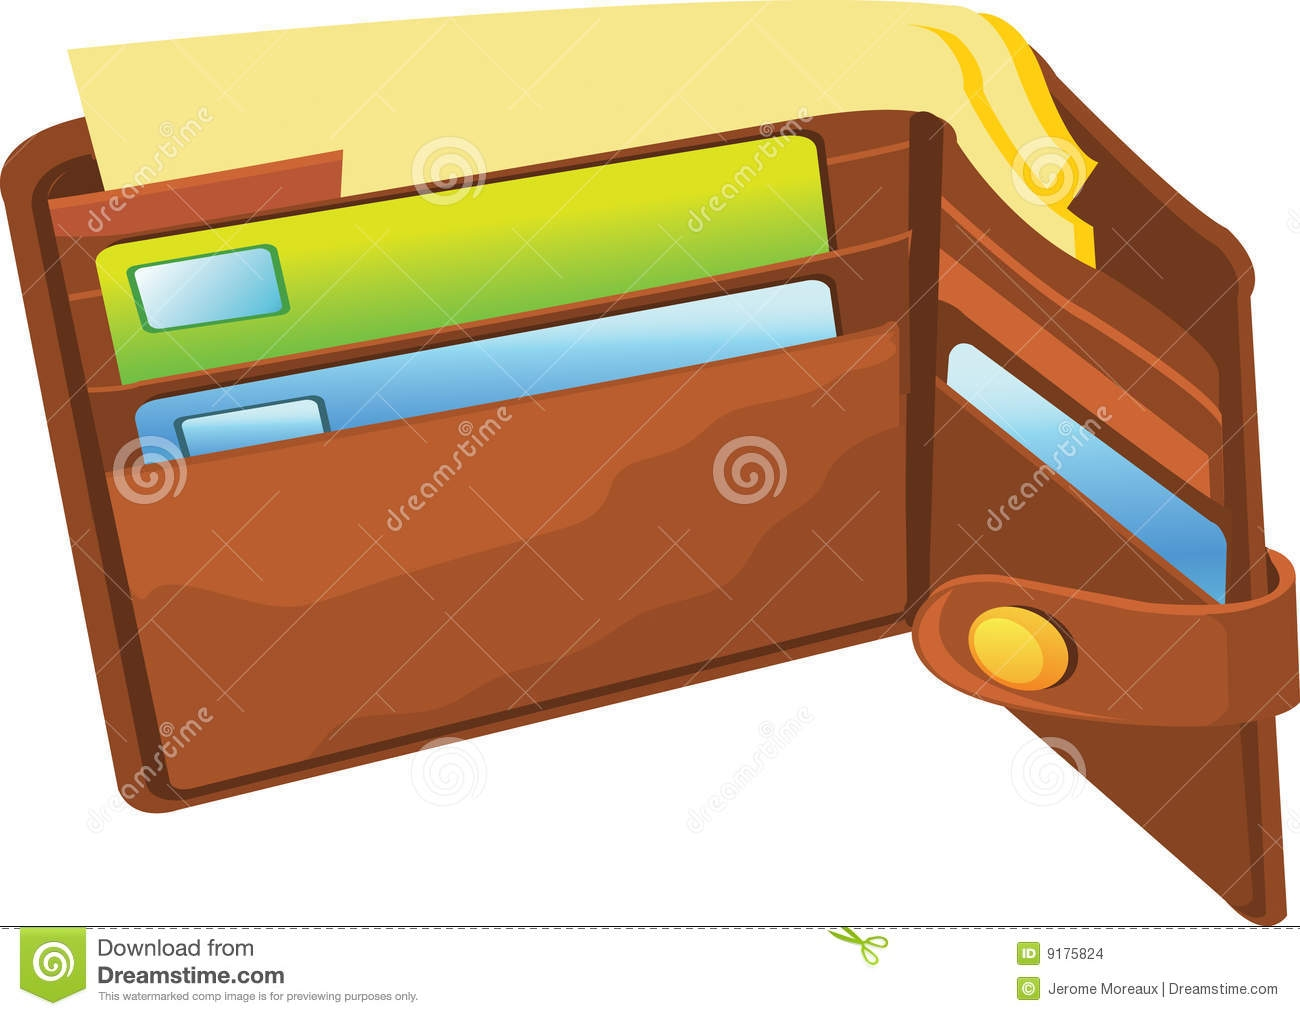 Wallet clipart. Awesome gallery digital collection